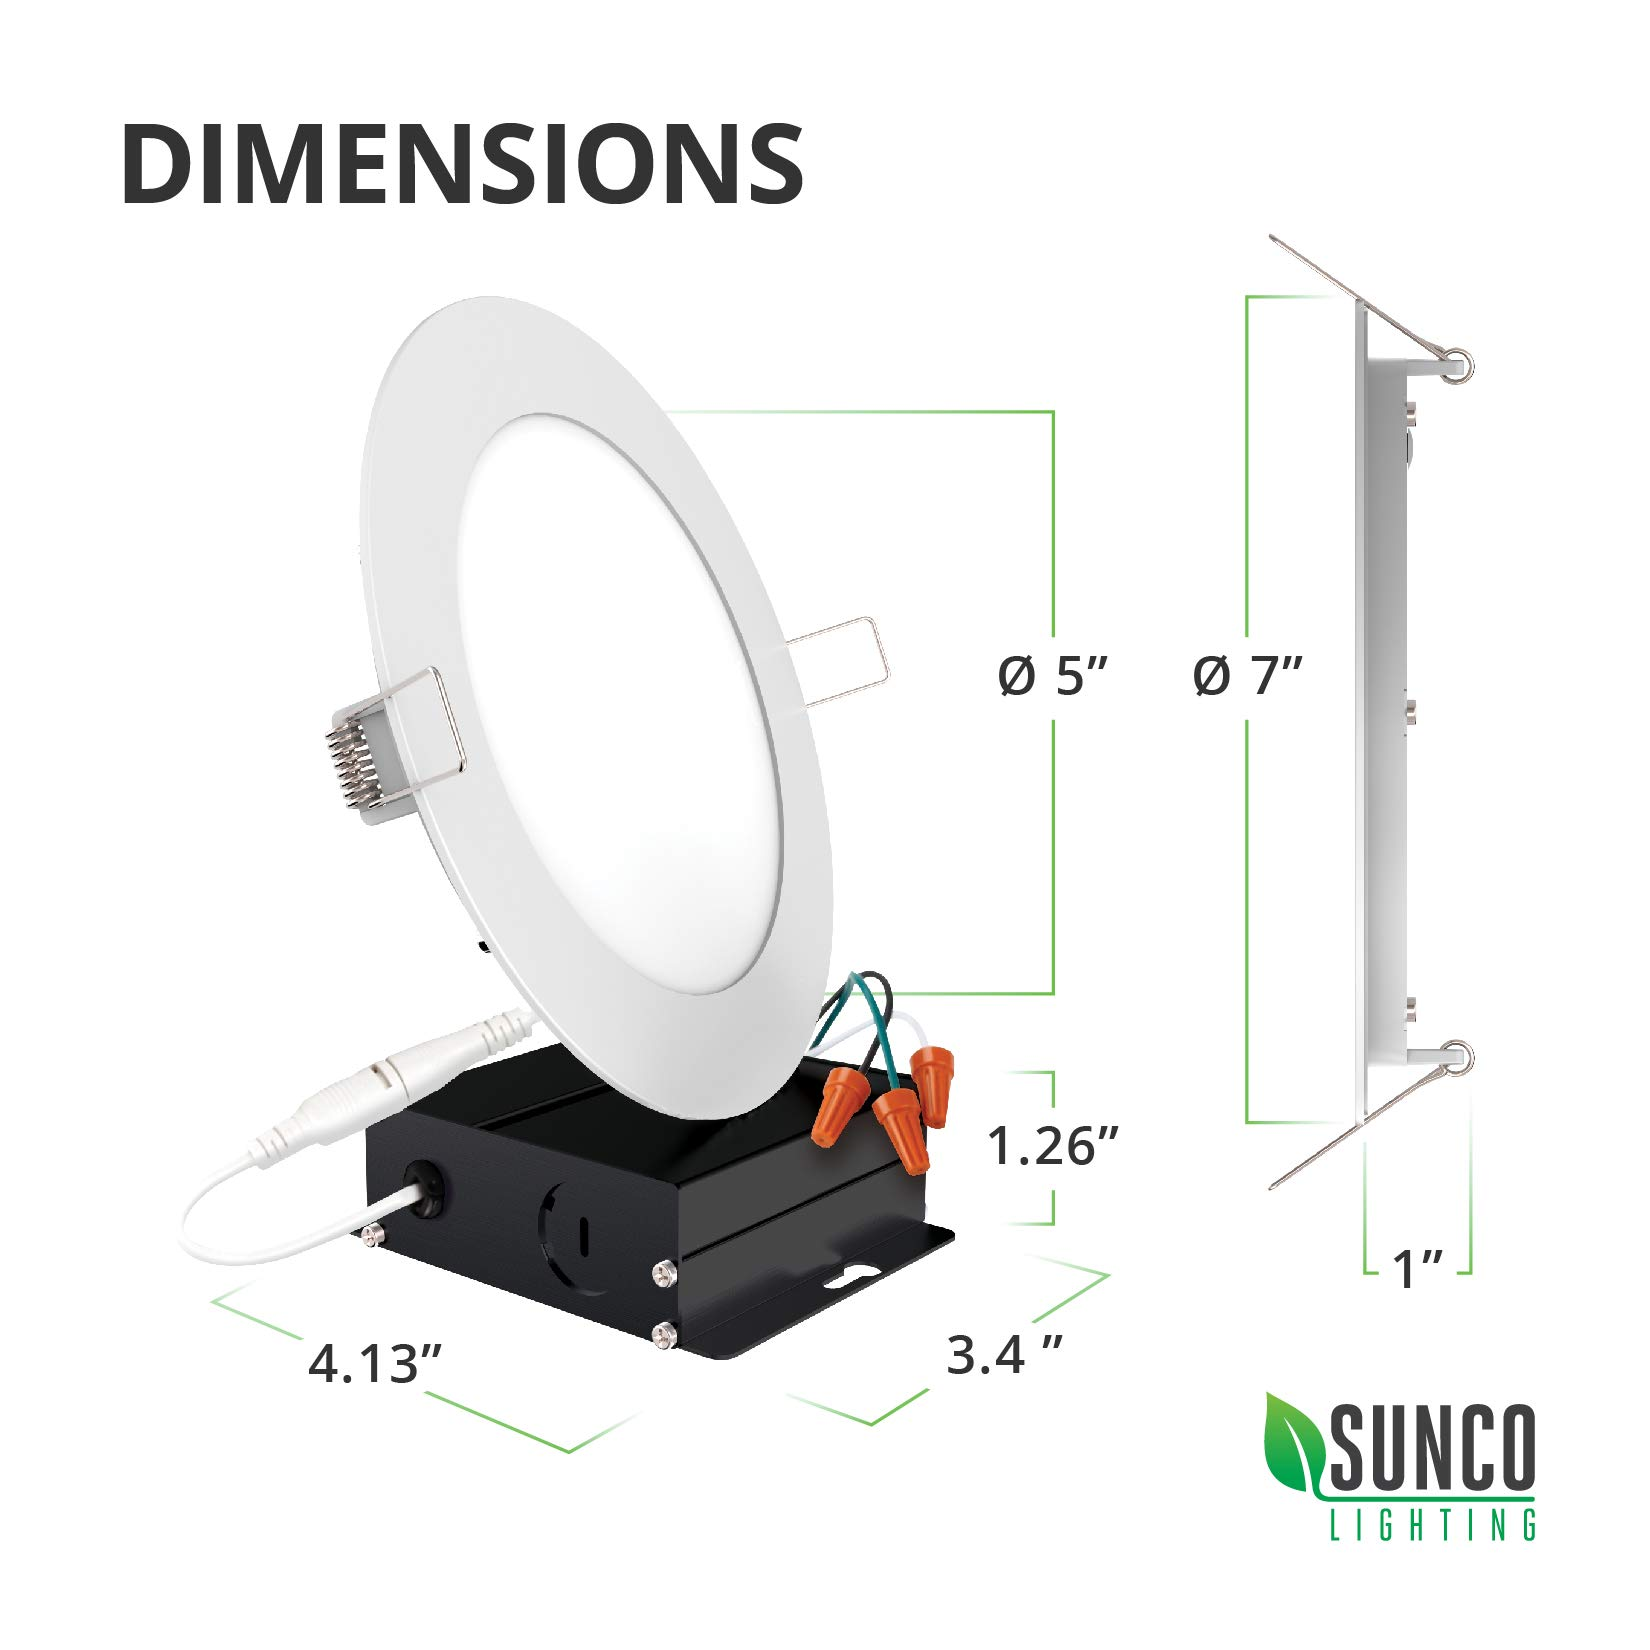 Sunco Lighting 12 Pack 6 Inch Slim LED Downlight with Junction Box, 14W=100W, 850 LM, Dimmable, 4000K Cool White, Recessed Jbox Fixture, Simple Retrofit Installation - ETL & Energy Star by Sunco Lighting (Image #10)